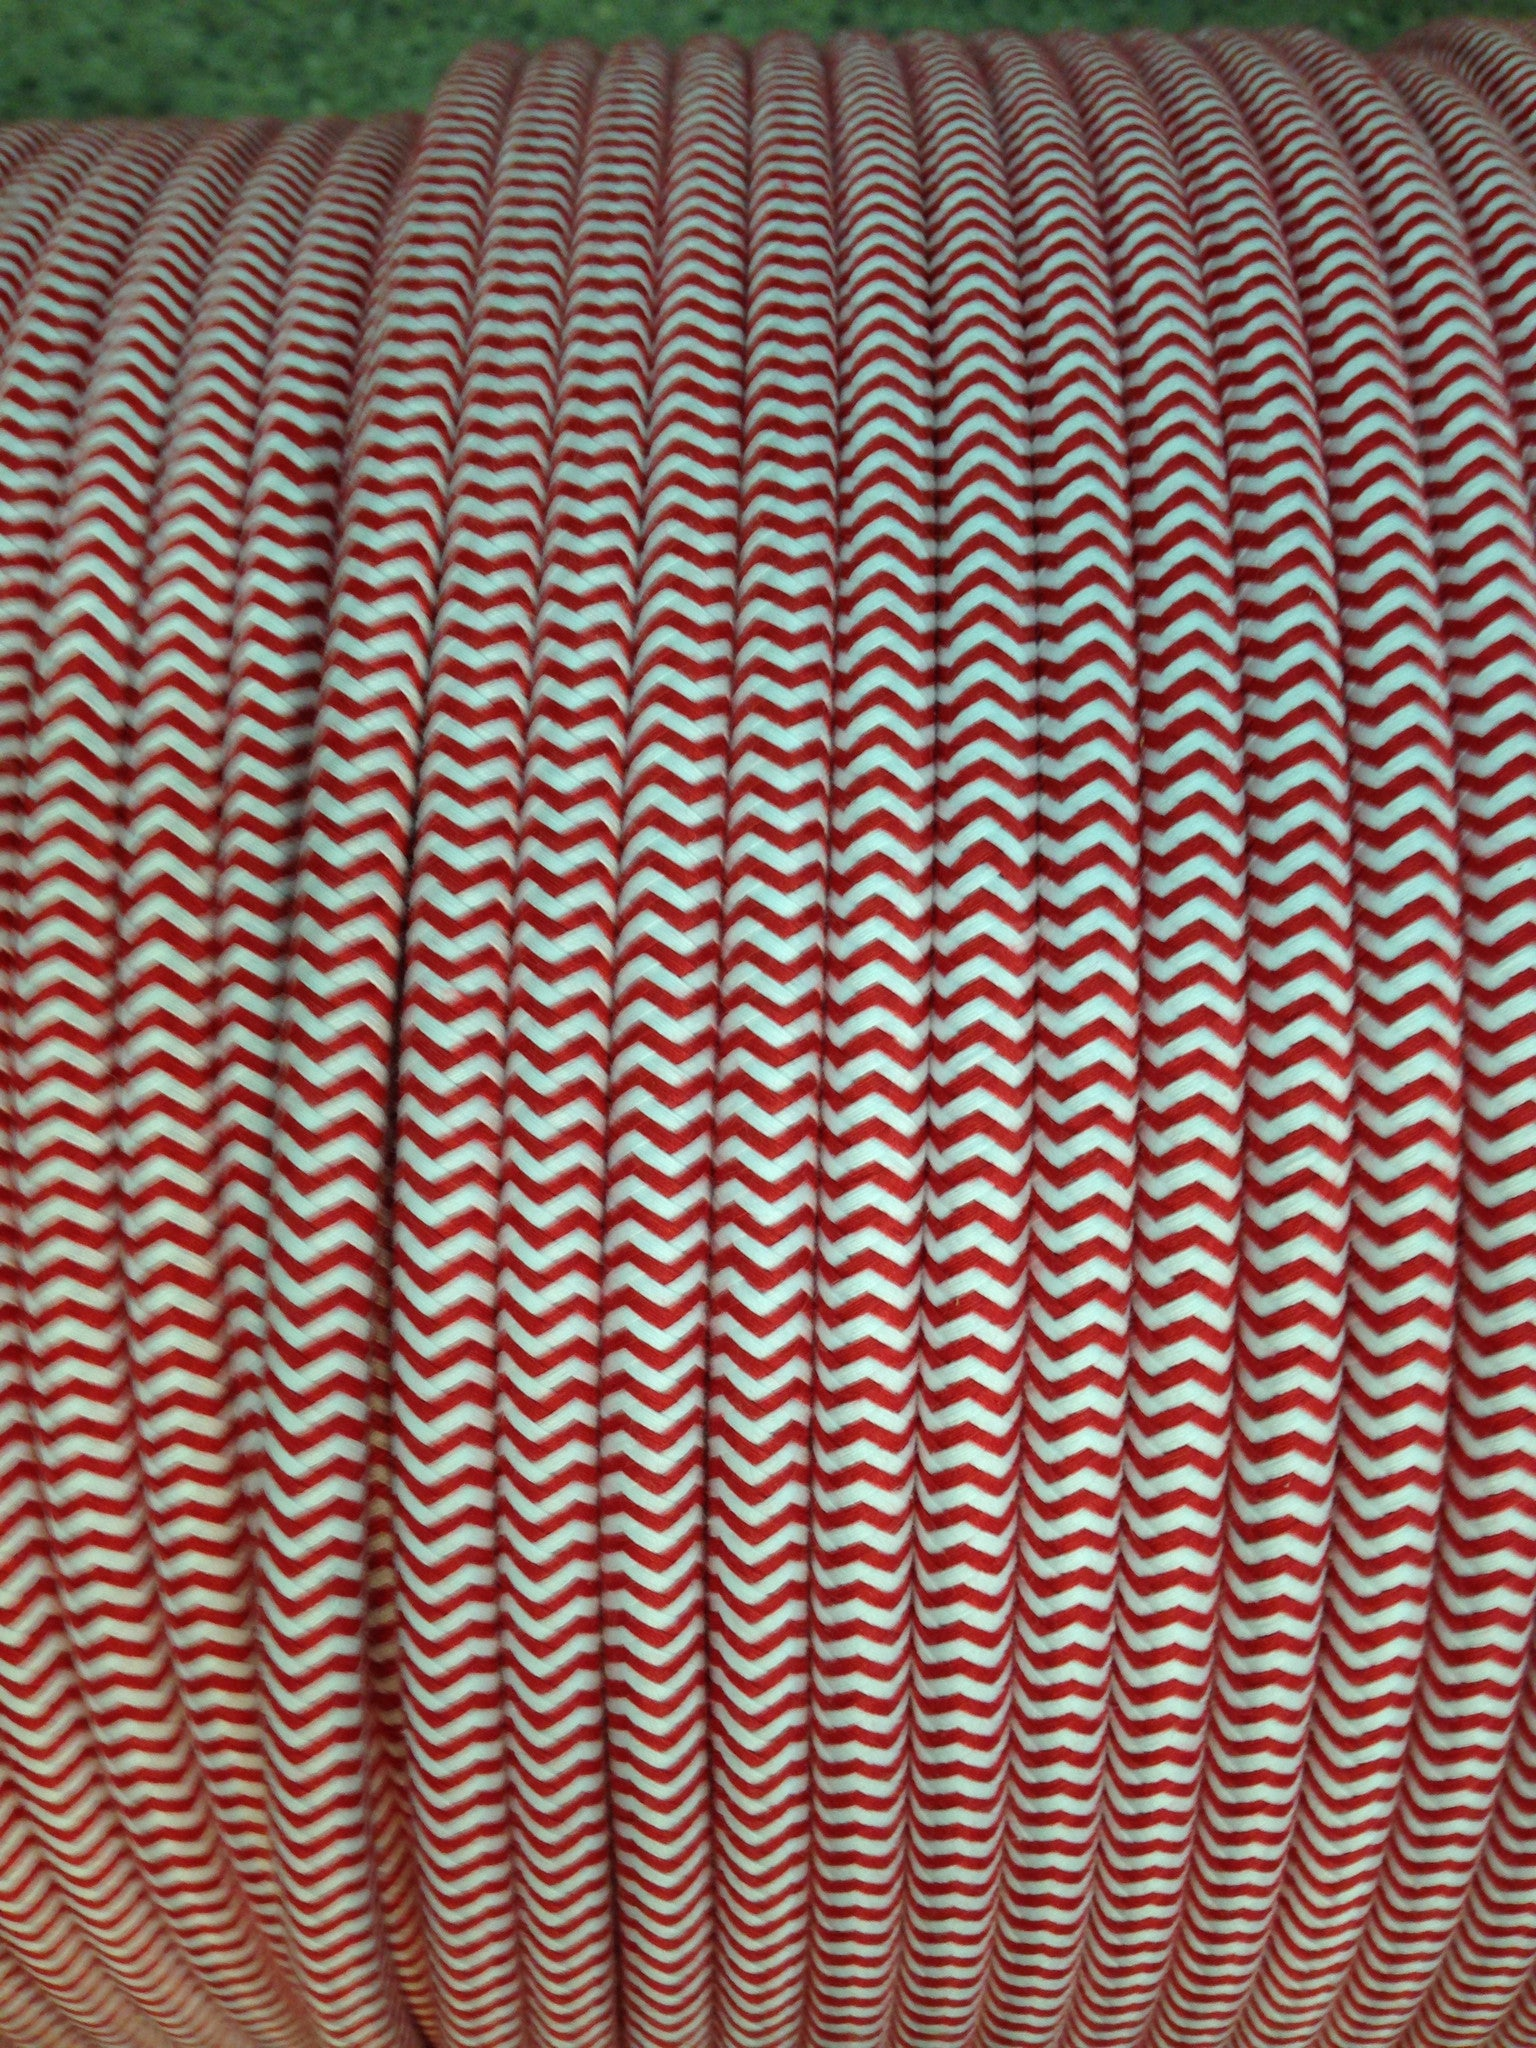 Red & White Nantucket Stripe UL LIsted 18-Gauge Cloth-Covered Round Pulley Cord $1/ft (300V AC max; Not for Use As Extension Cord)